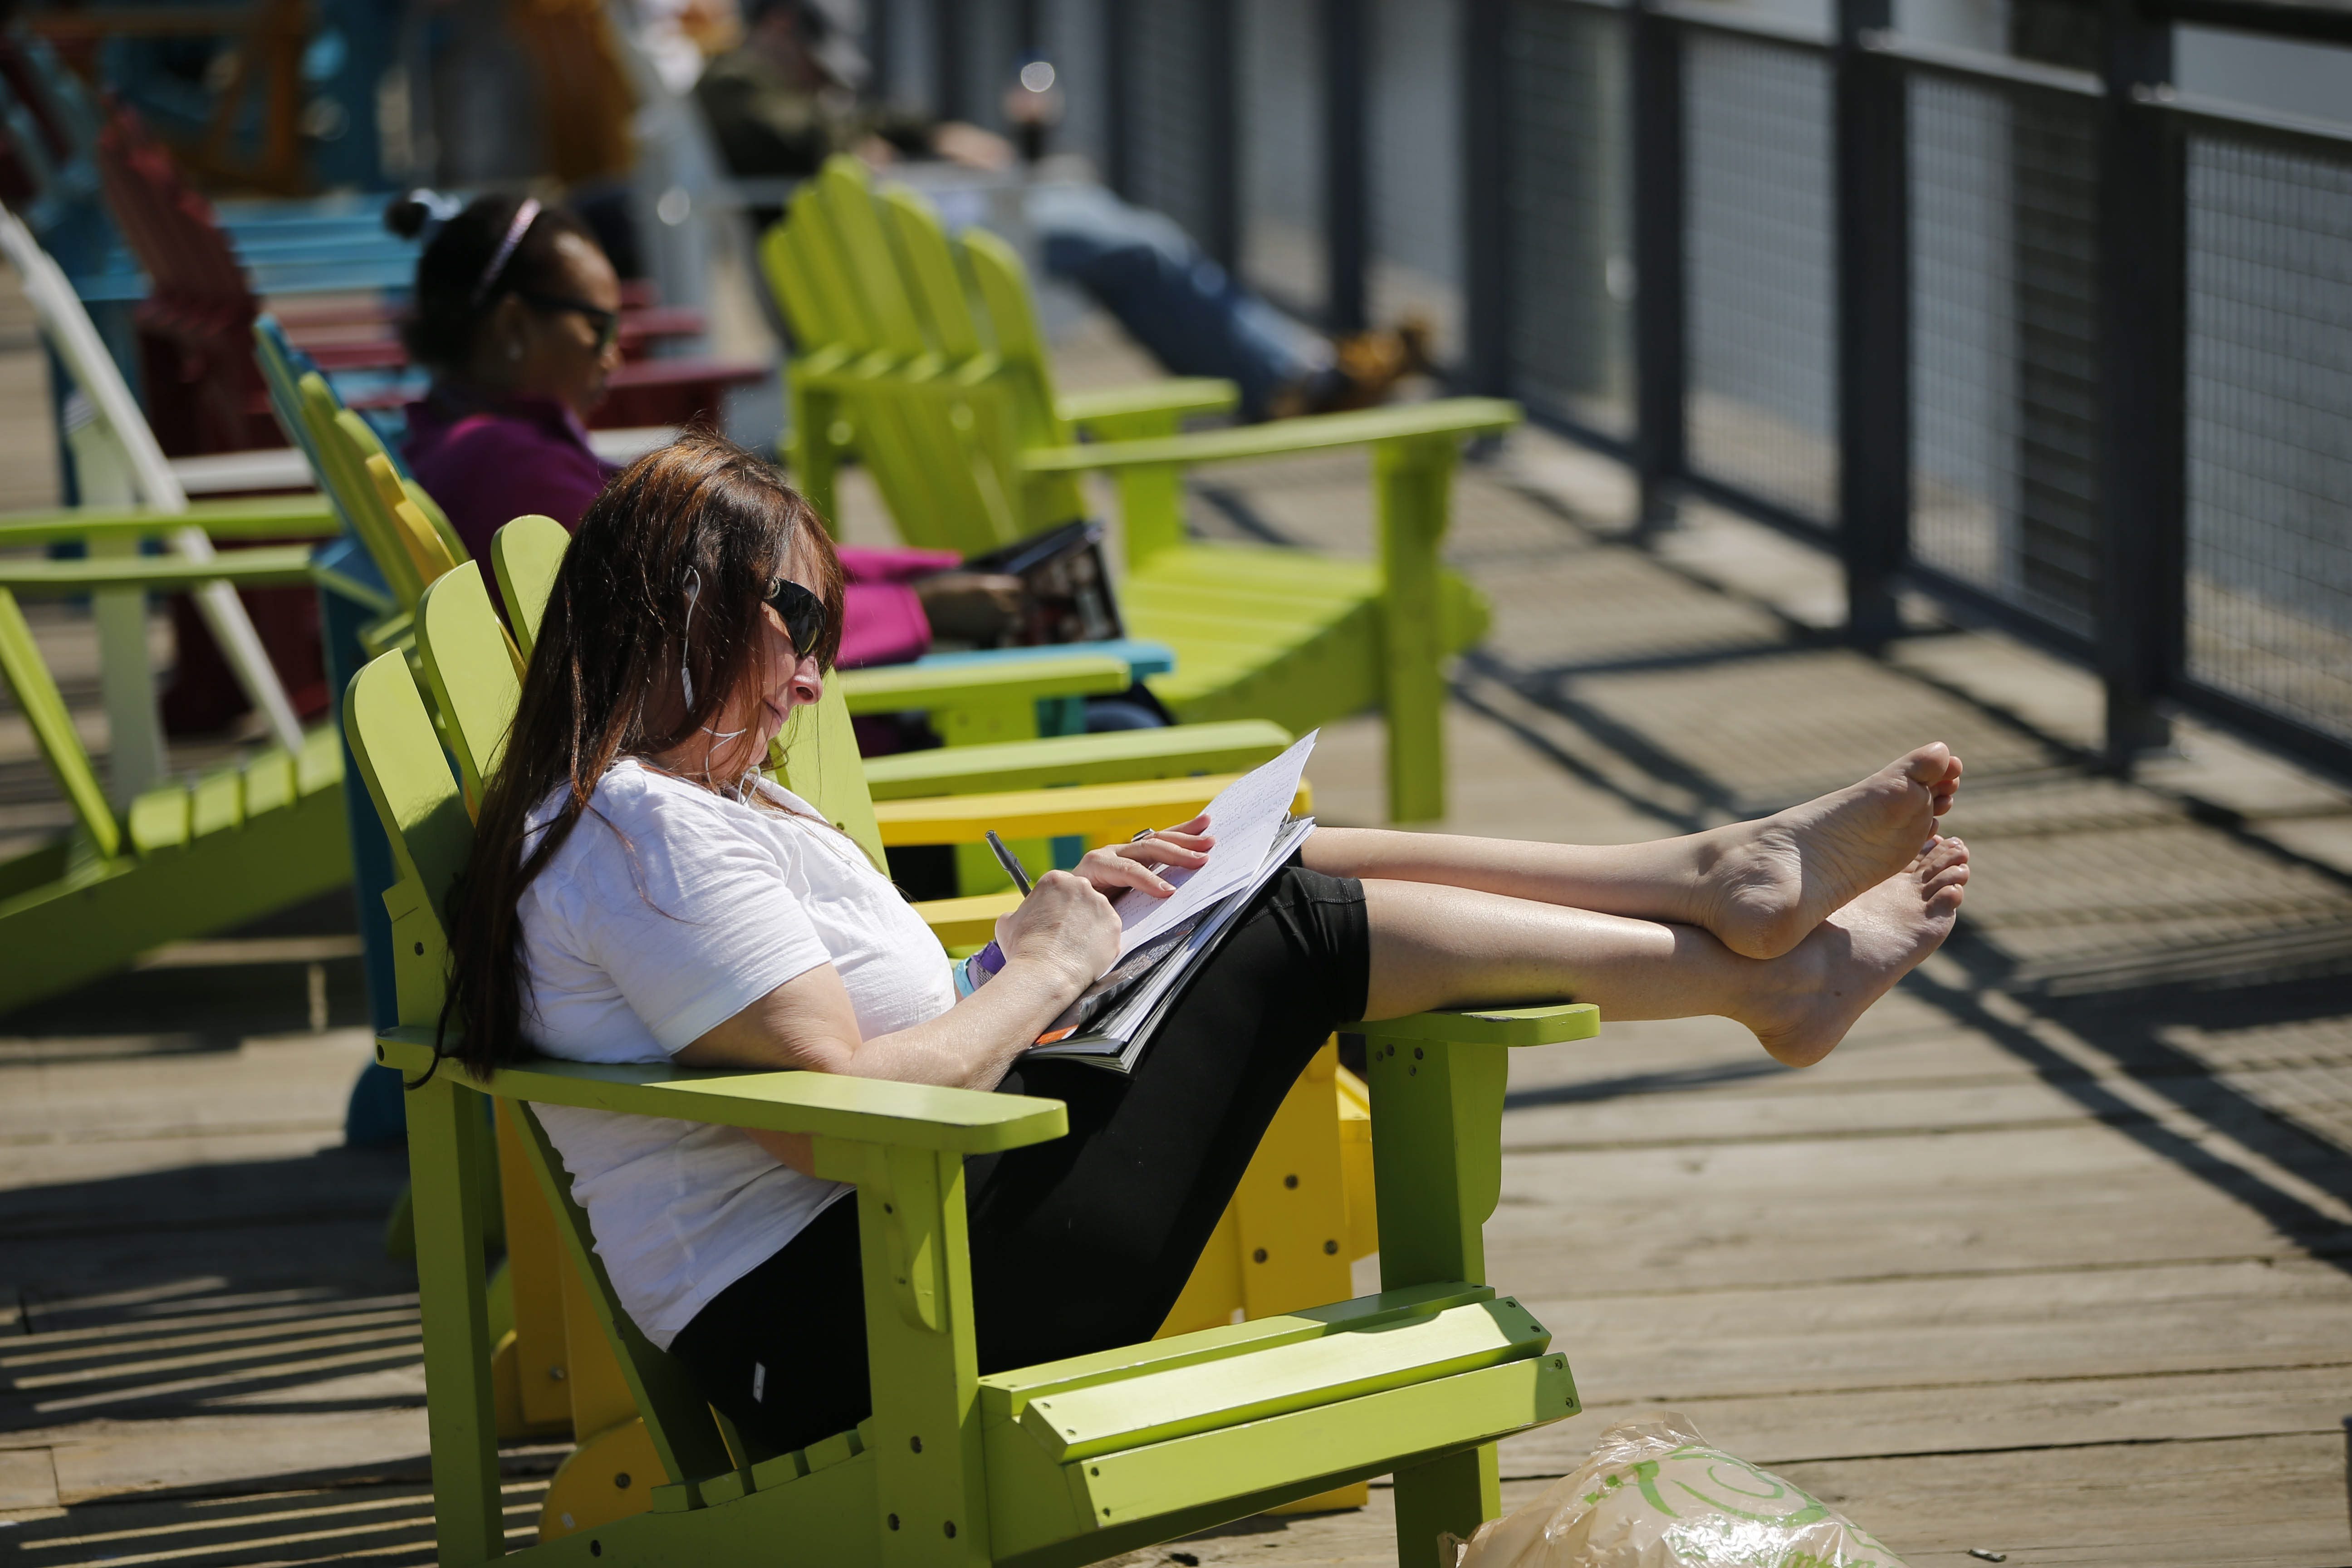 Lori Carvelli of Buffalo seizes the opportunity to soak up the sunshine Friday at Canalside, stretching out in a chair on the boardwalk while doing some writing and enjoying the weather.